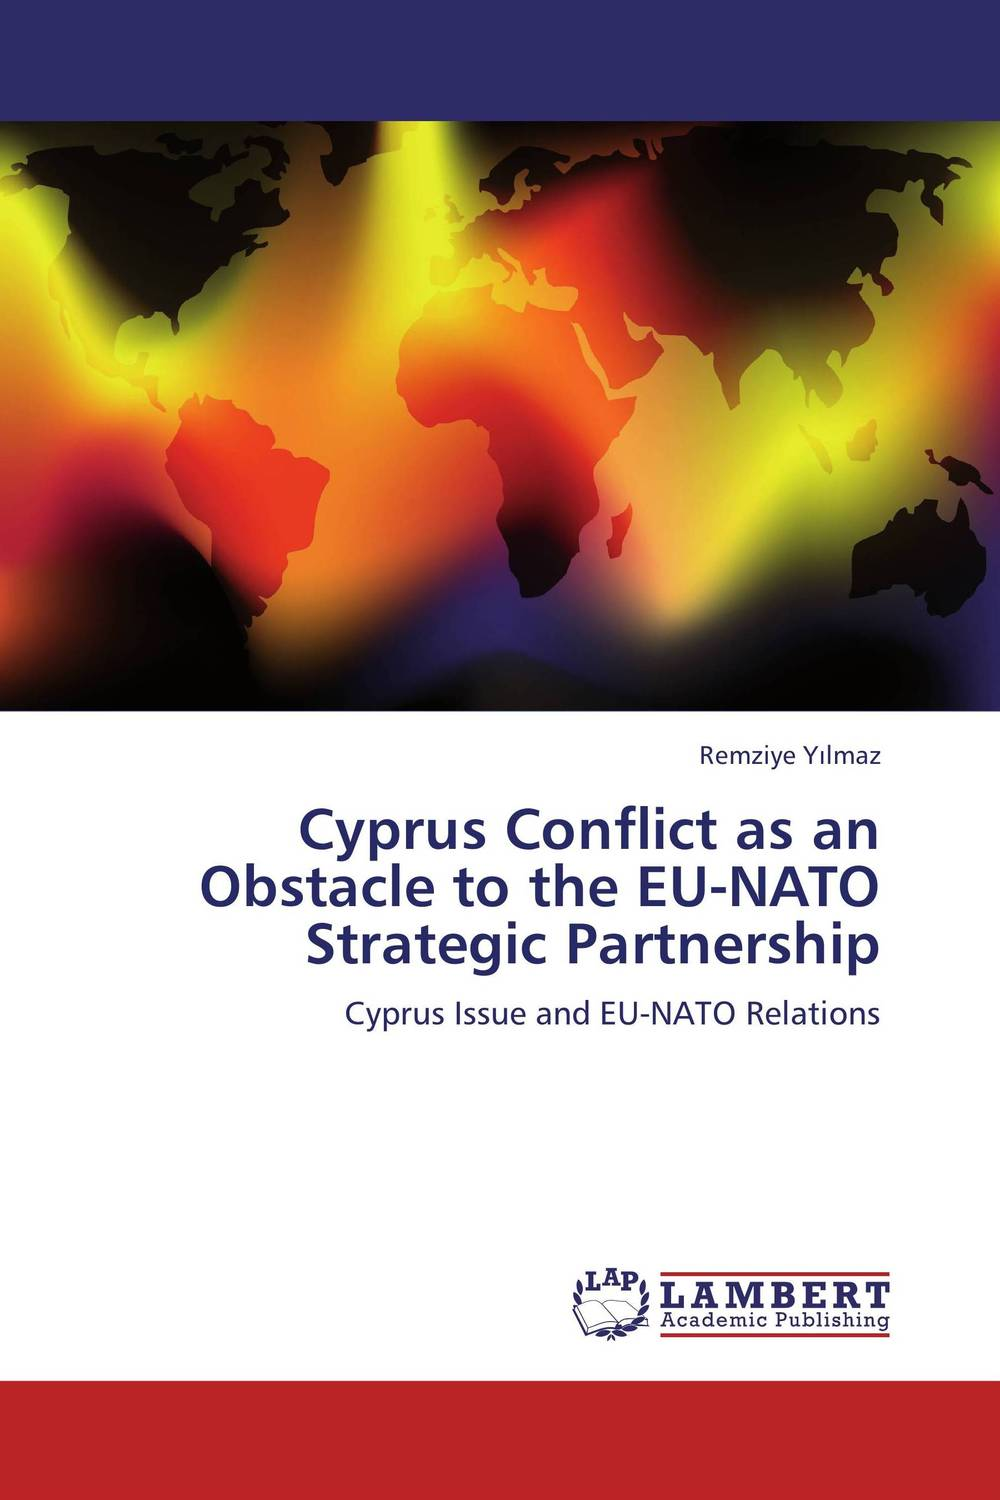 Cyprus Conflict as an Obstacle to the EU-NATO Strategic Partnership